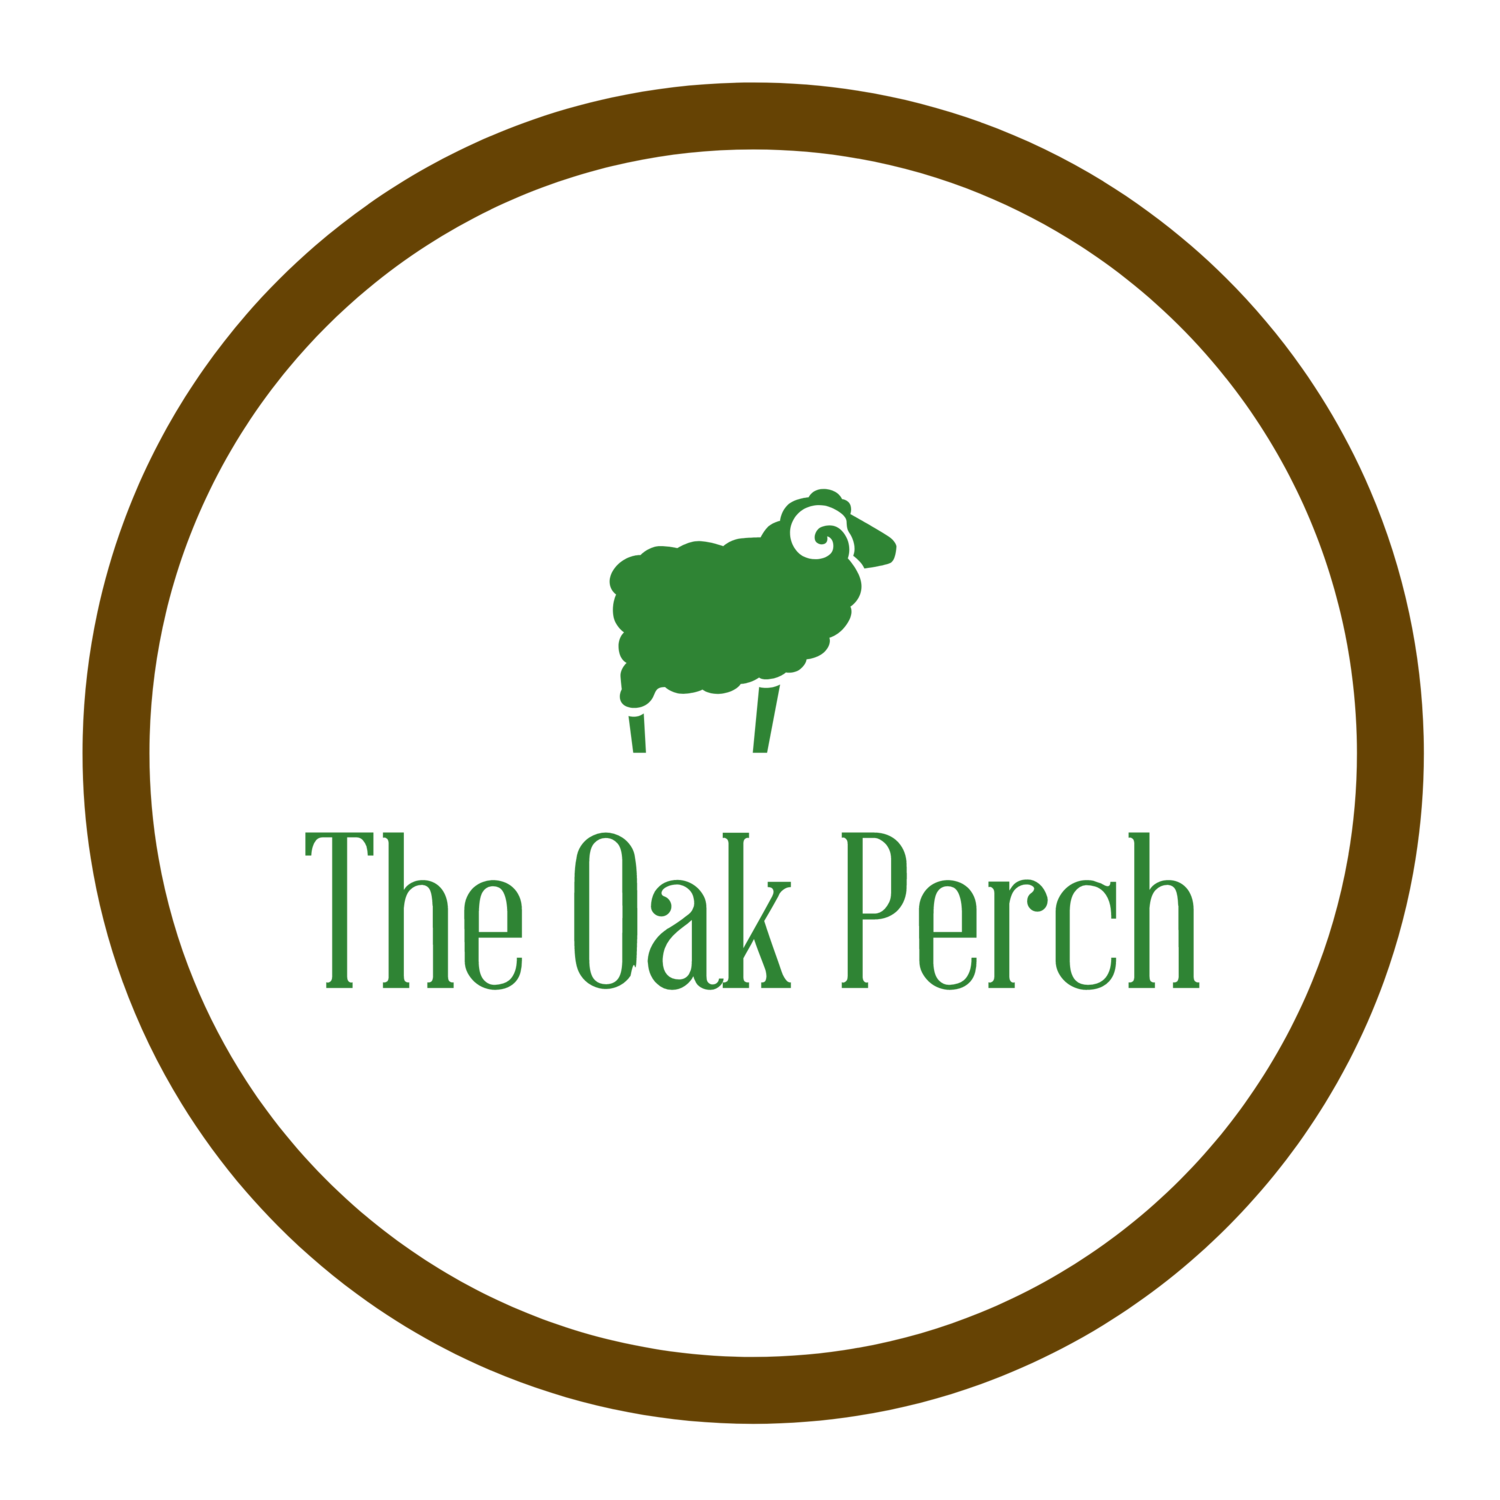 The Oak Perch